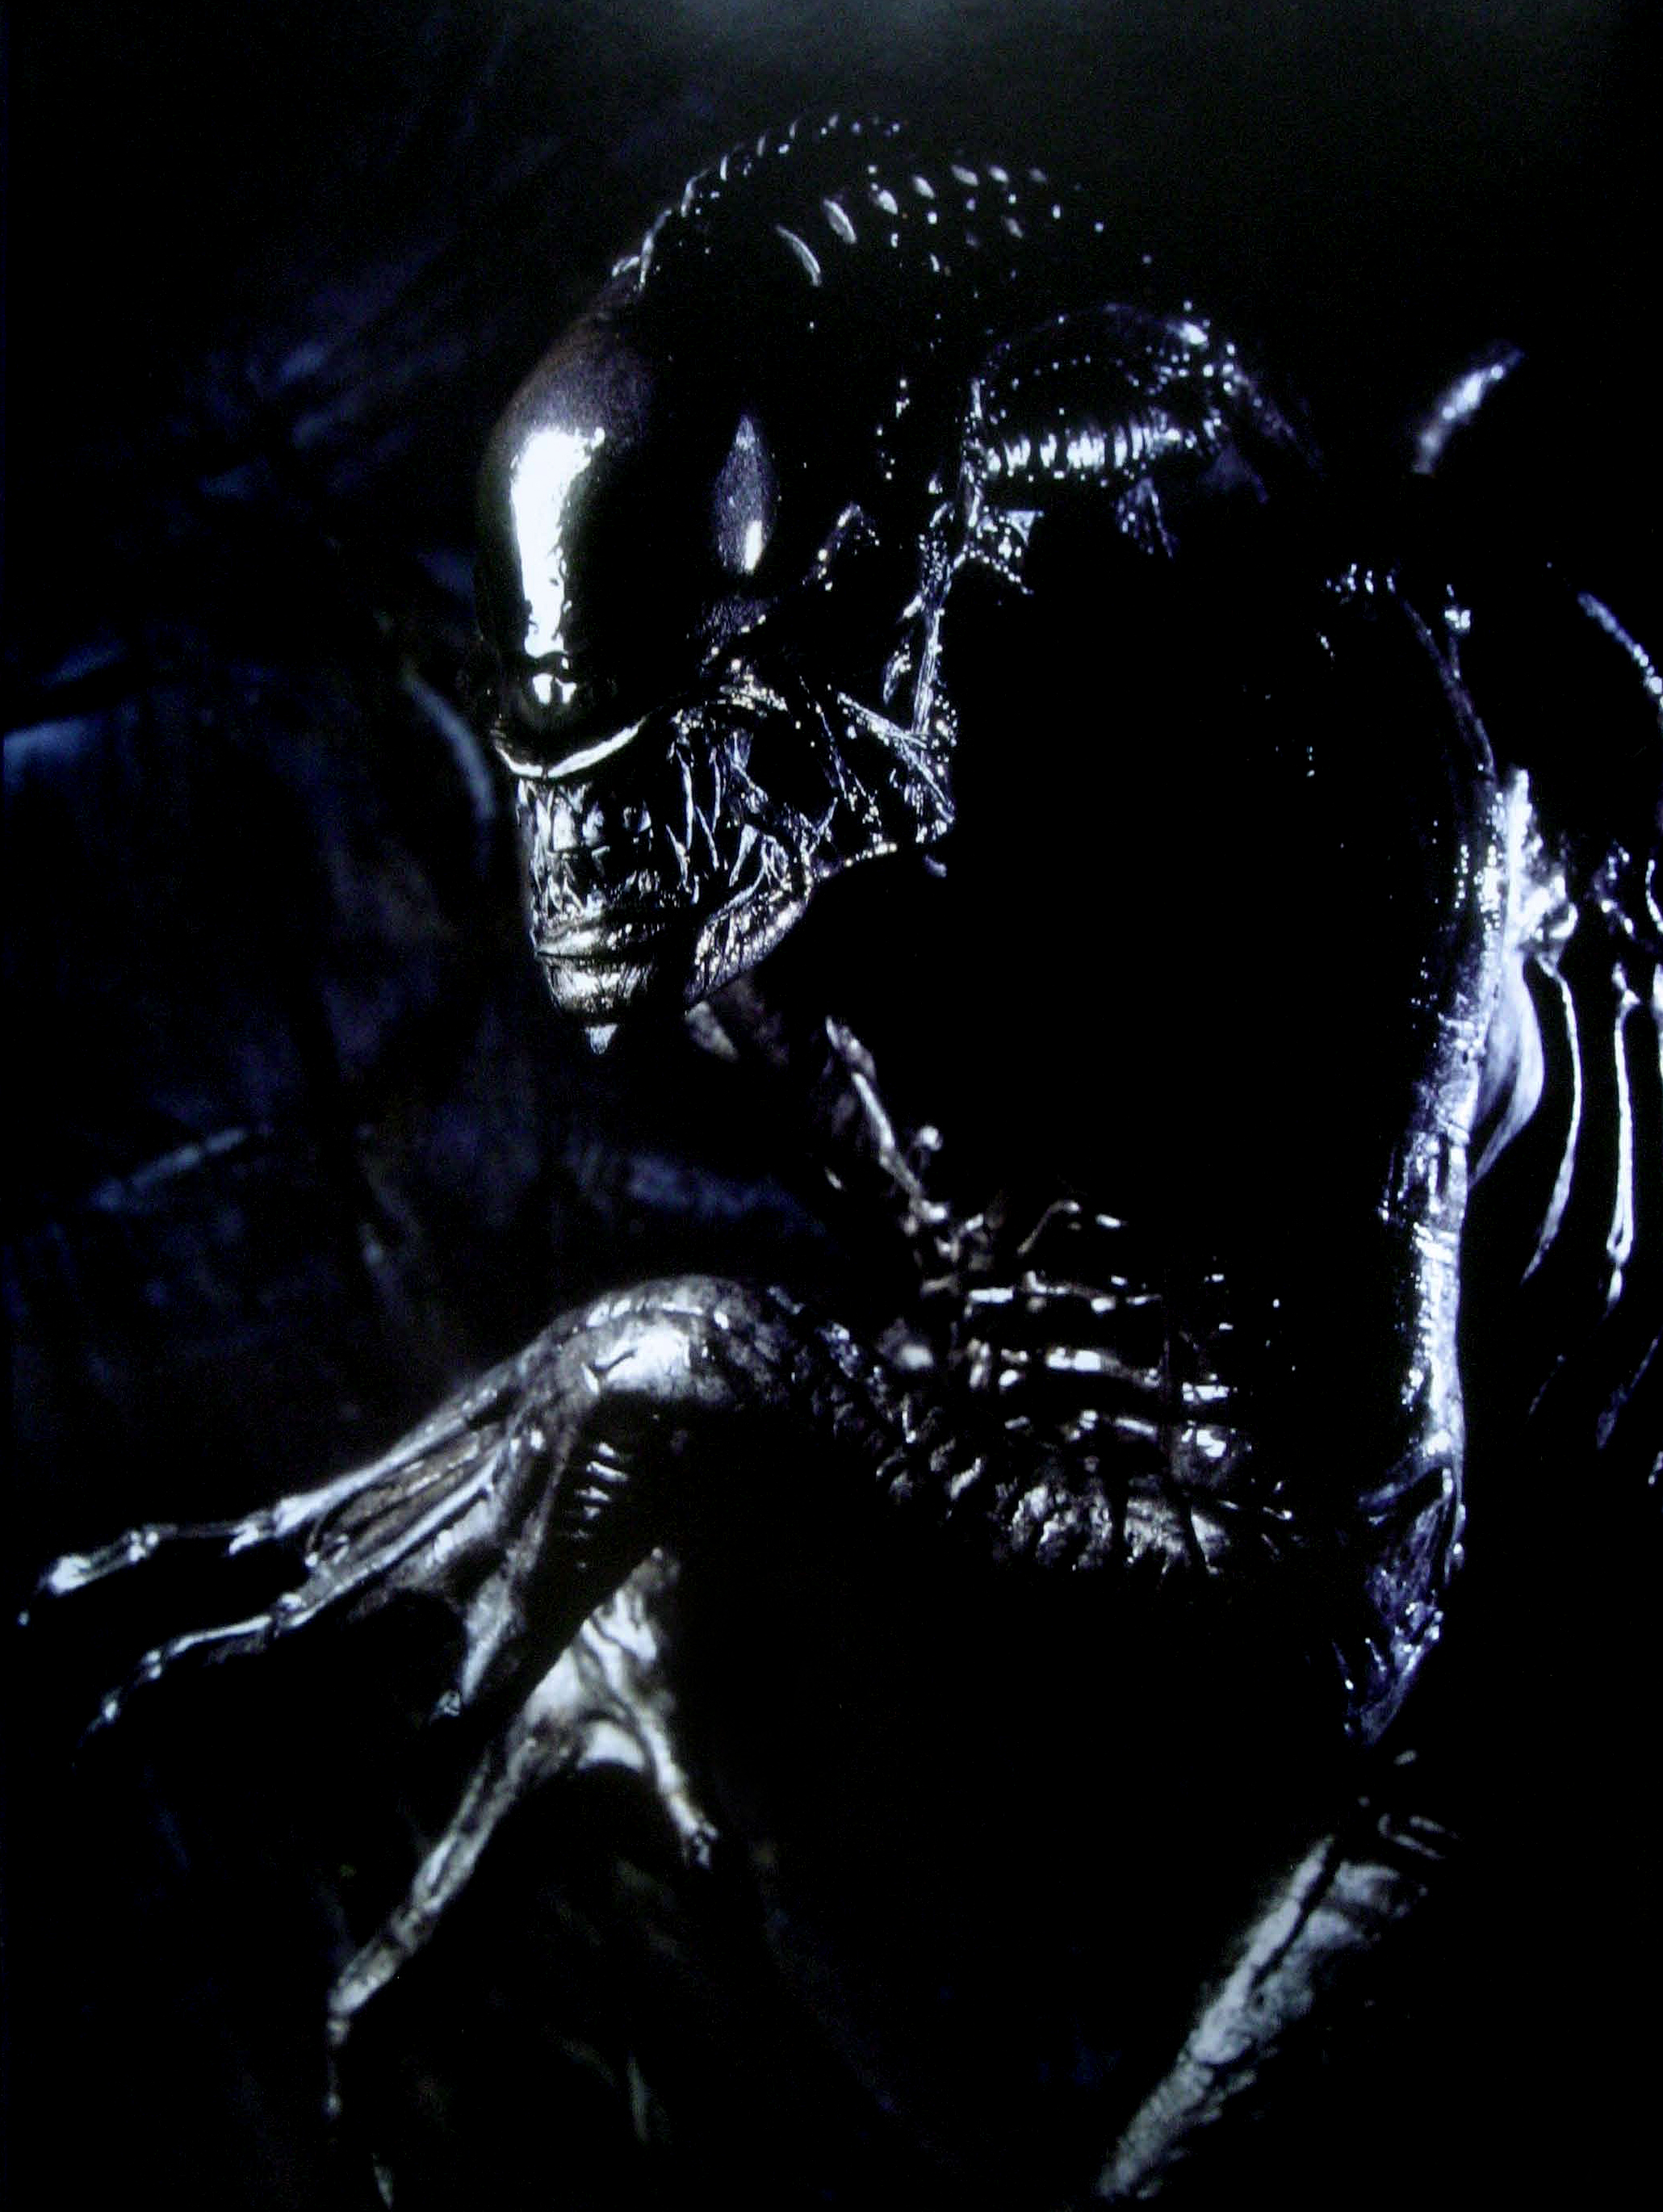 Alien Vs Predator Wallpapers High Quality Download Free